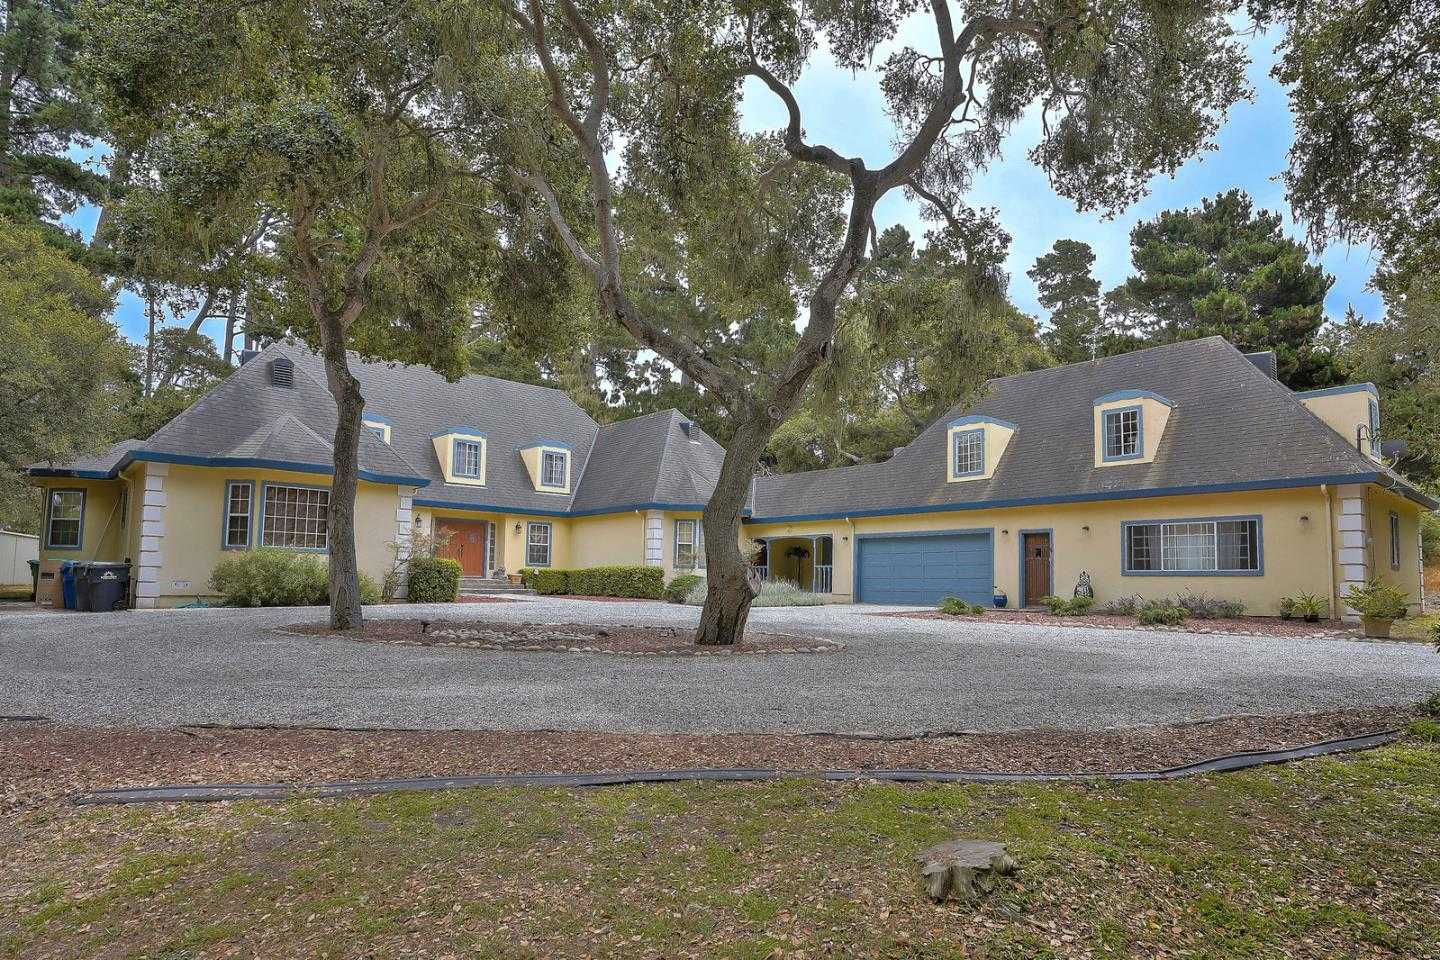 $2,395,000 - 6Br/6Ba -  for Sale in Pebble Beach